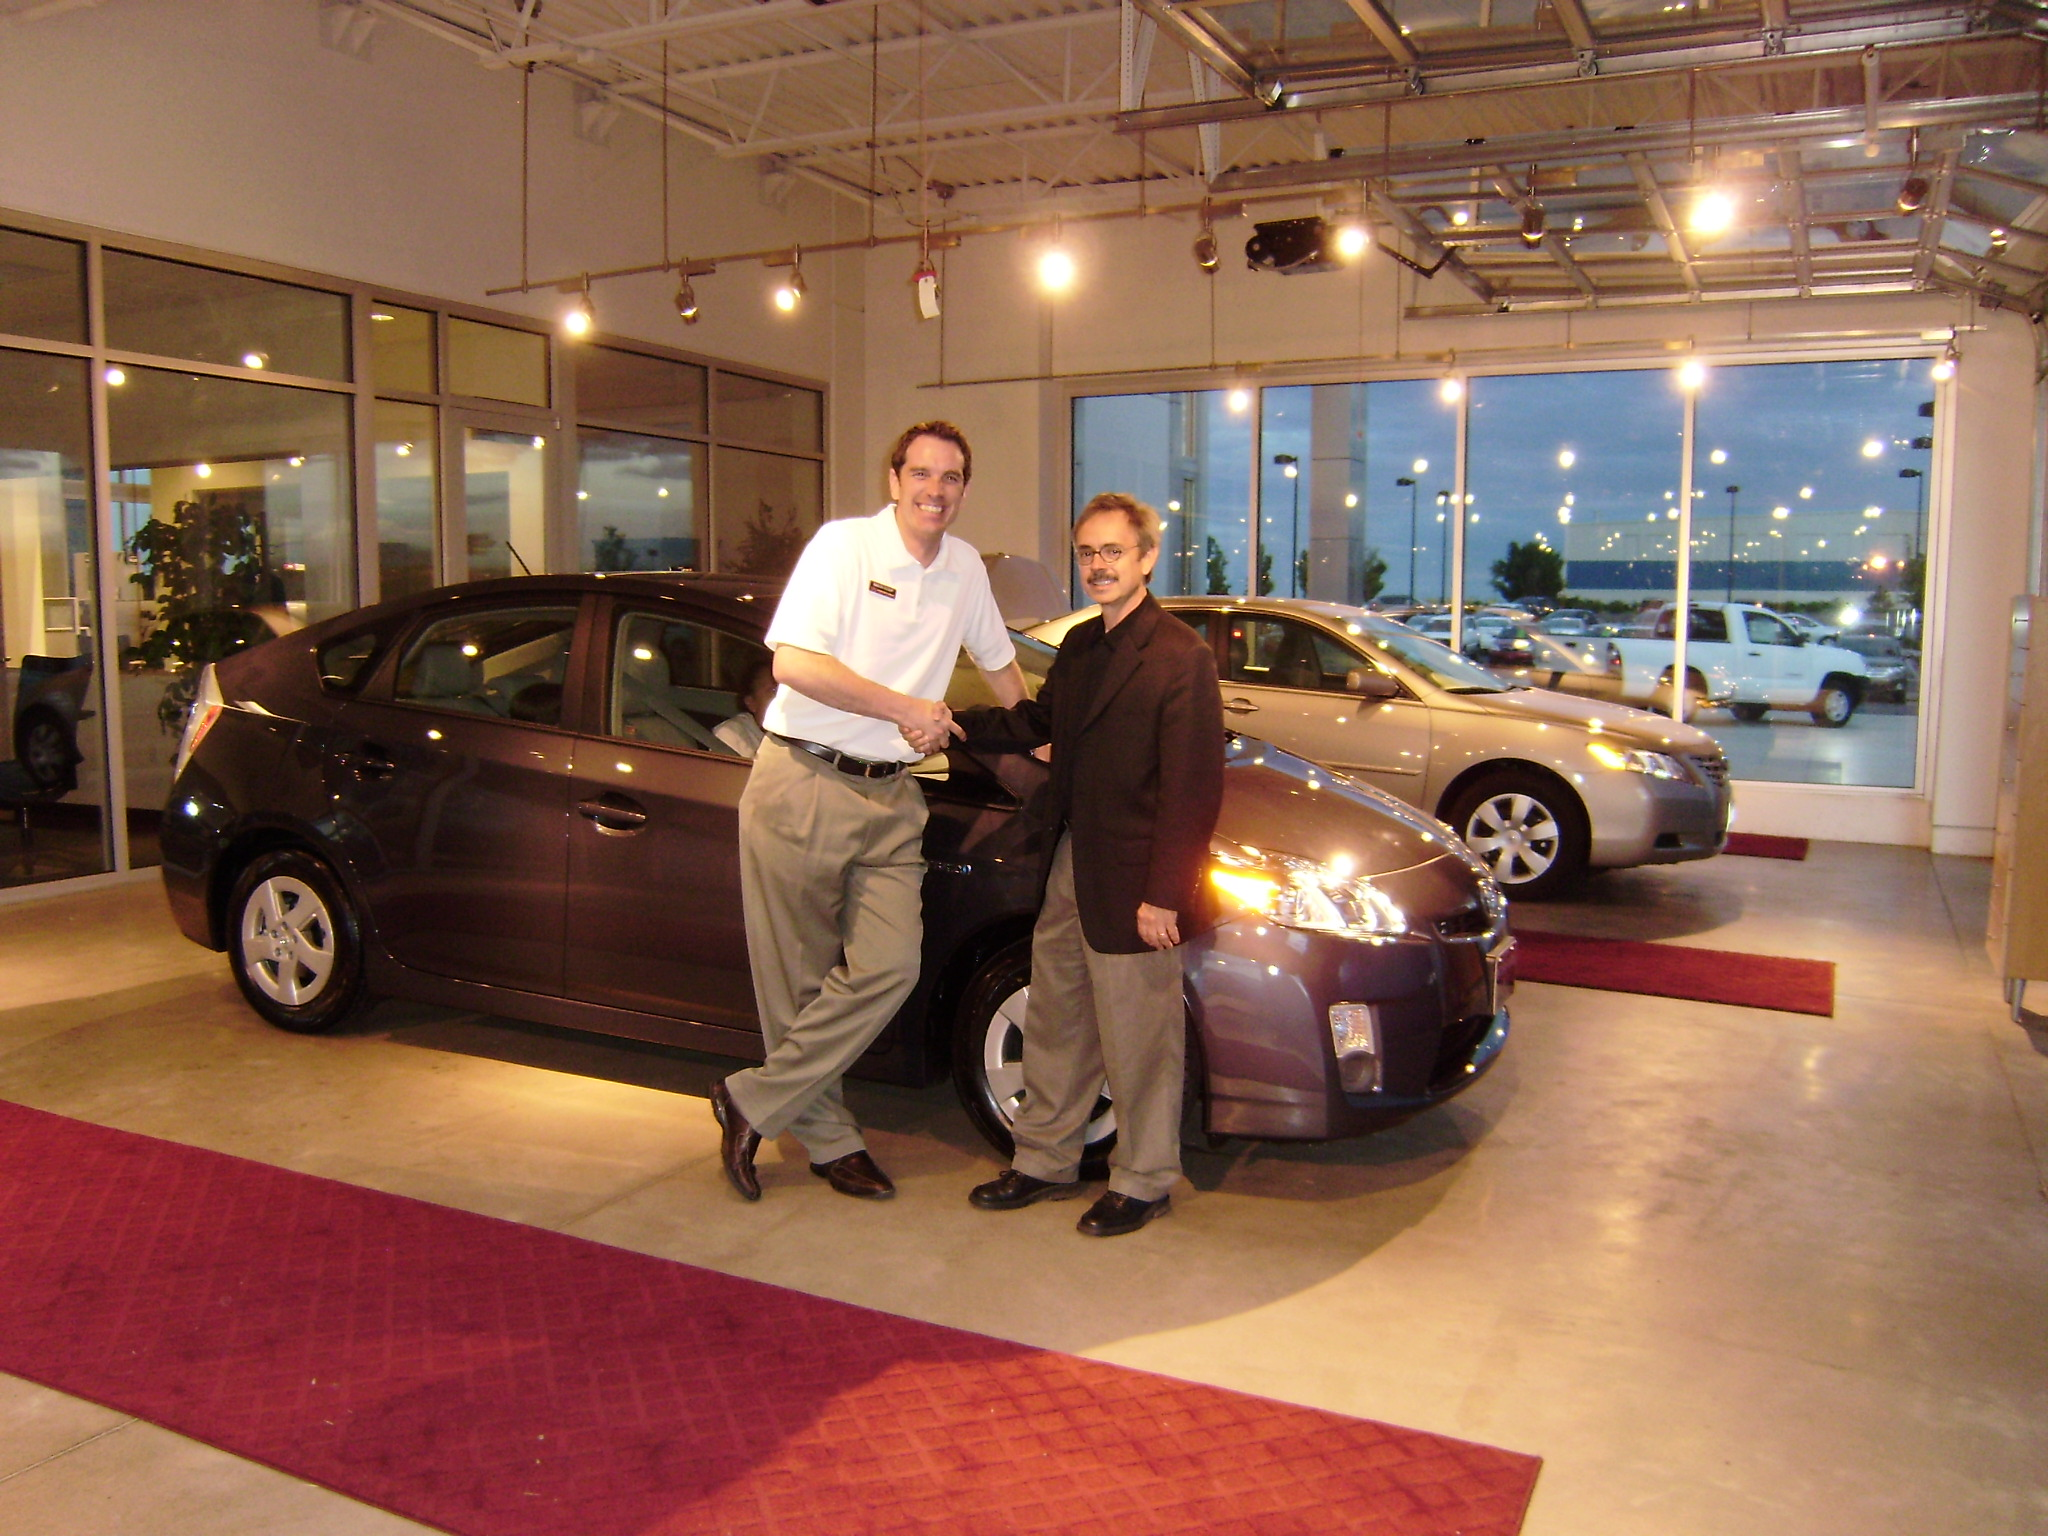 Alan Ford posgin with Brion Stapp and his new 2010 Prius!